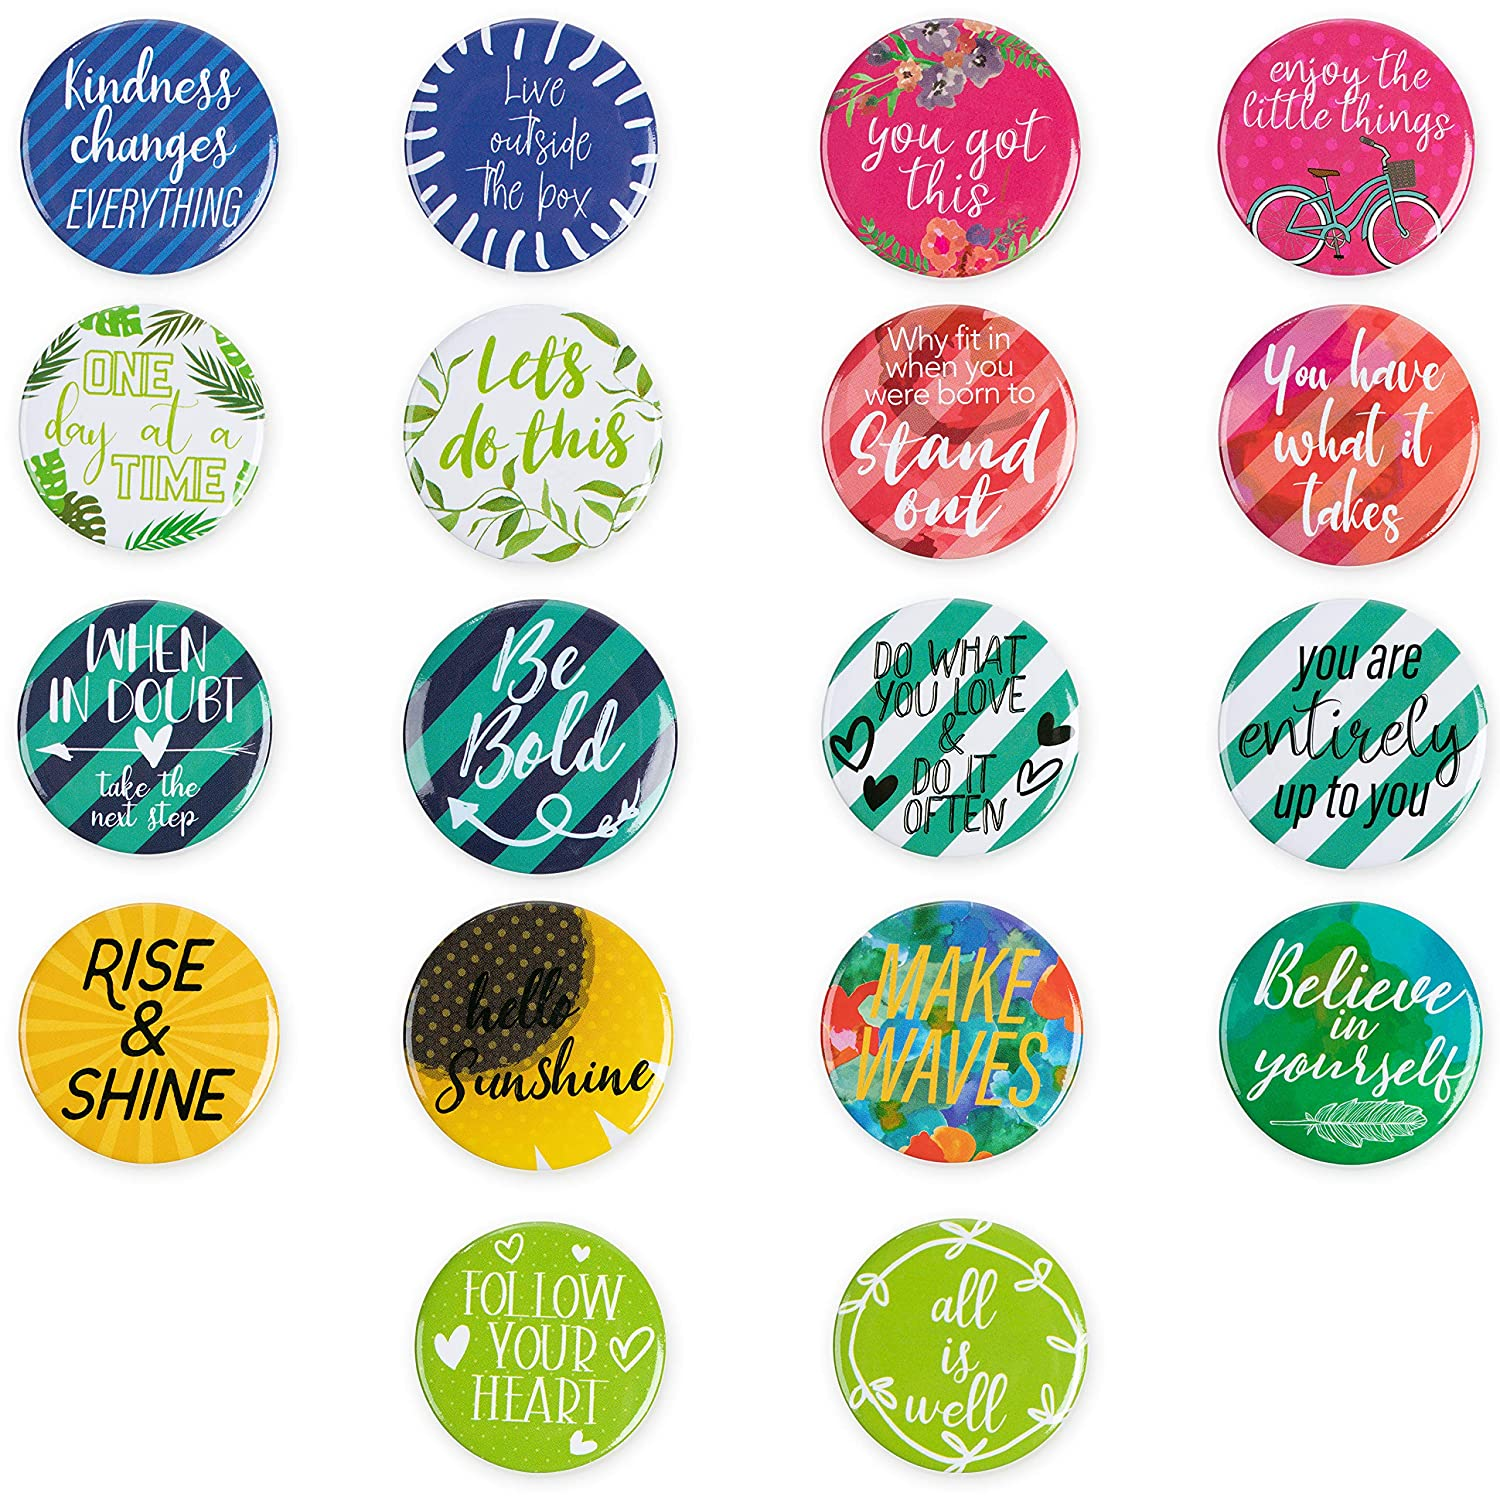 Locker Magnets - 18-Pack Motivational Magnets for Lockers or Fridge, Inspirational Magnets with Encouragement Quotes, For Office, Classroom, Students, Teachers, Teacher Gifts, 1.25 Inches in Diameter